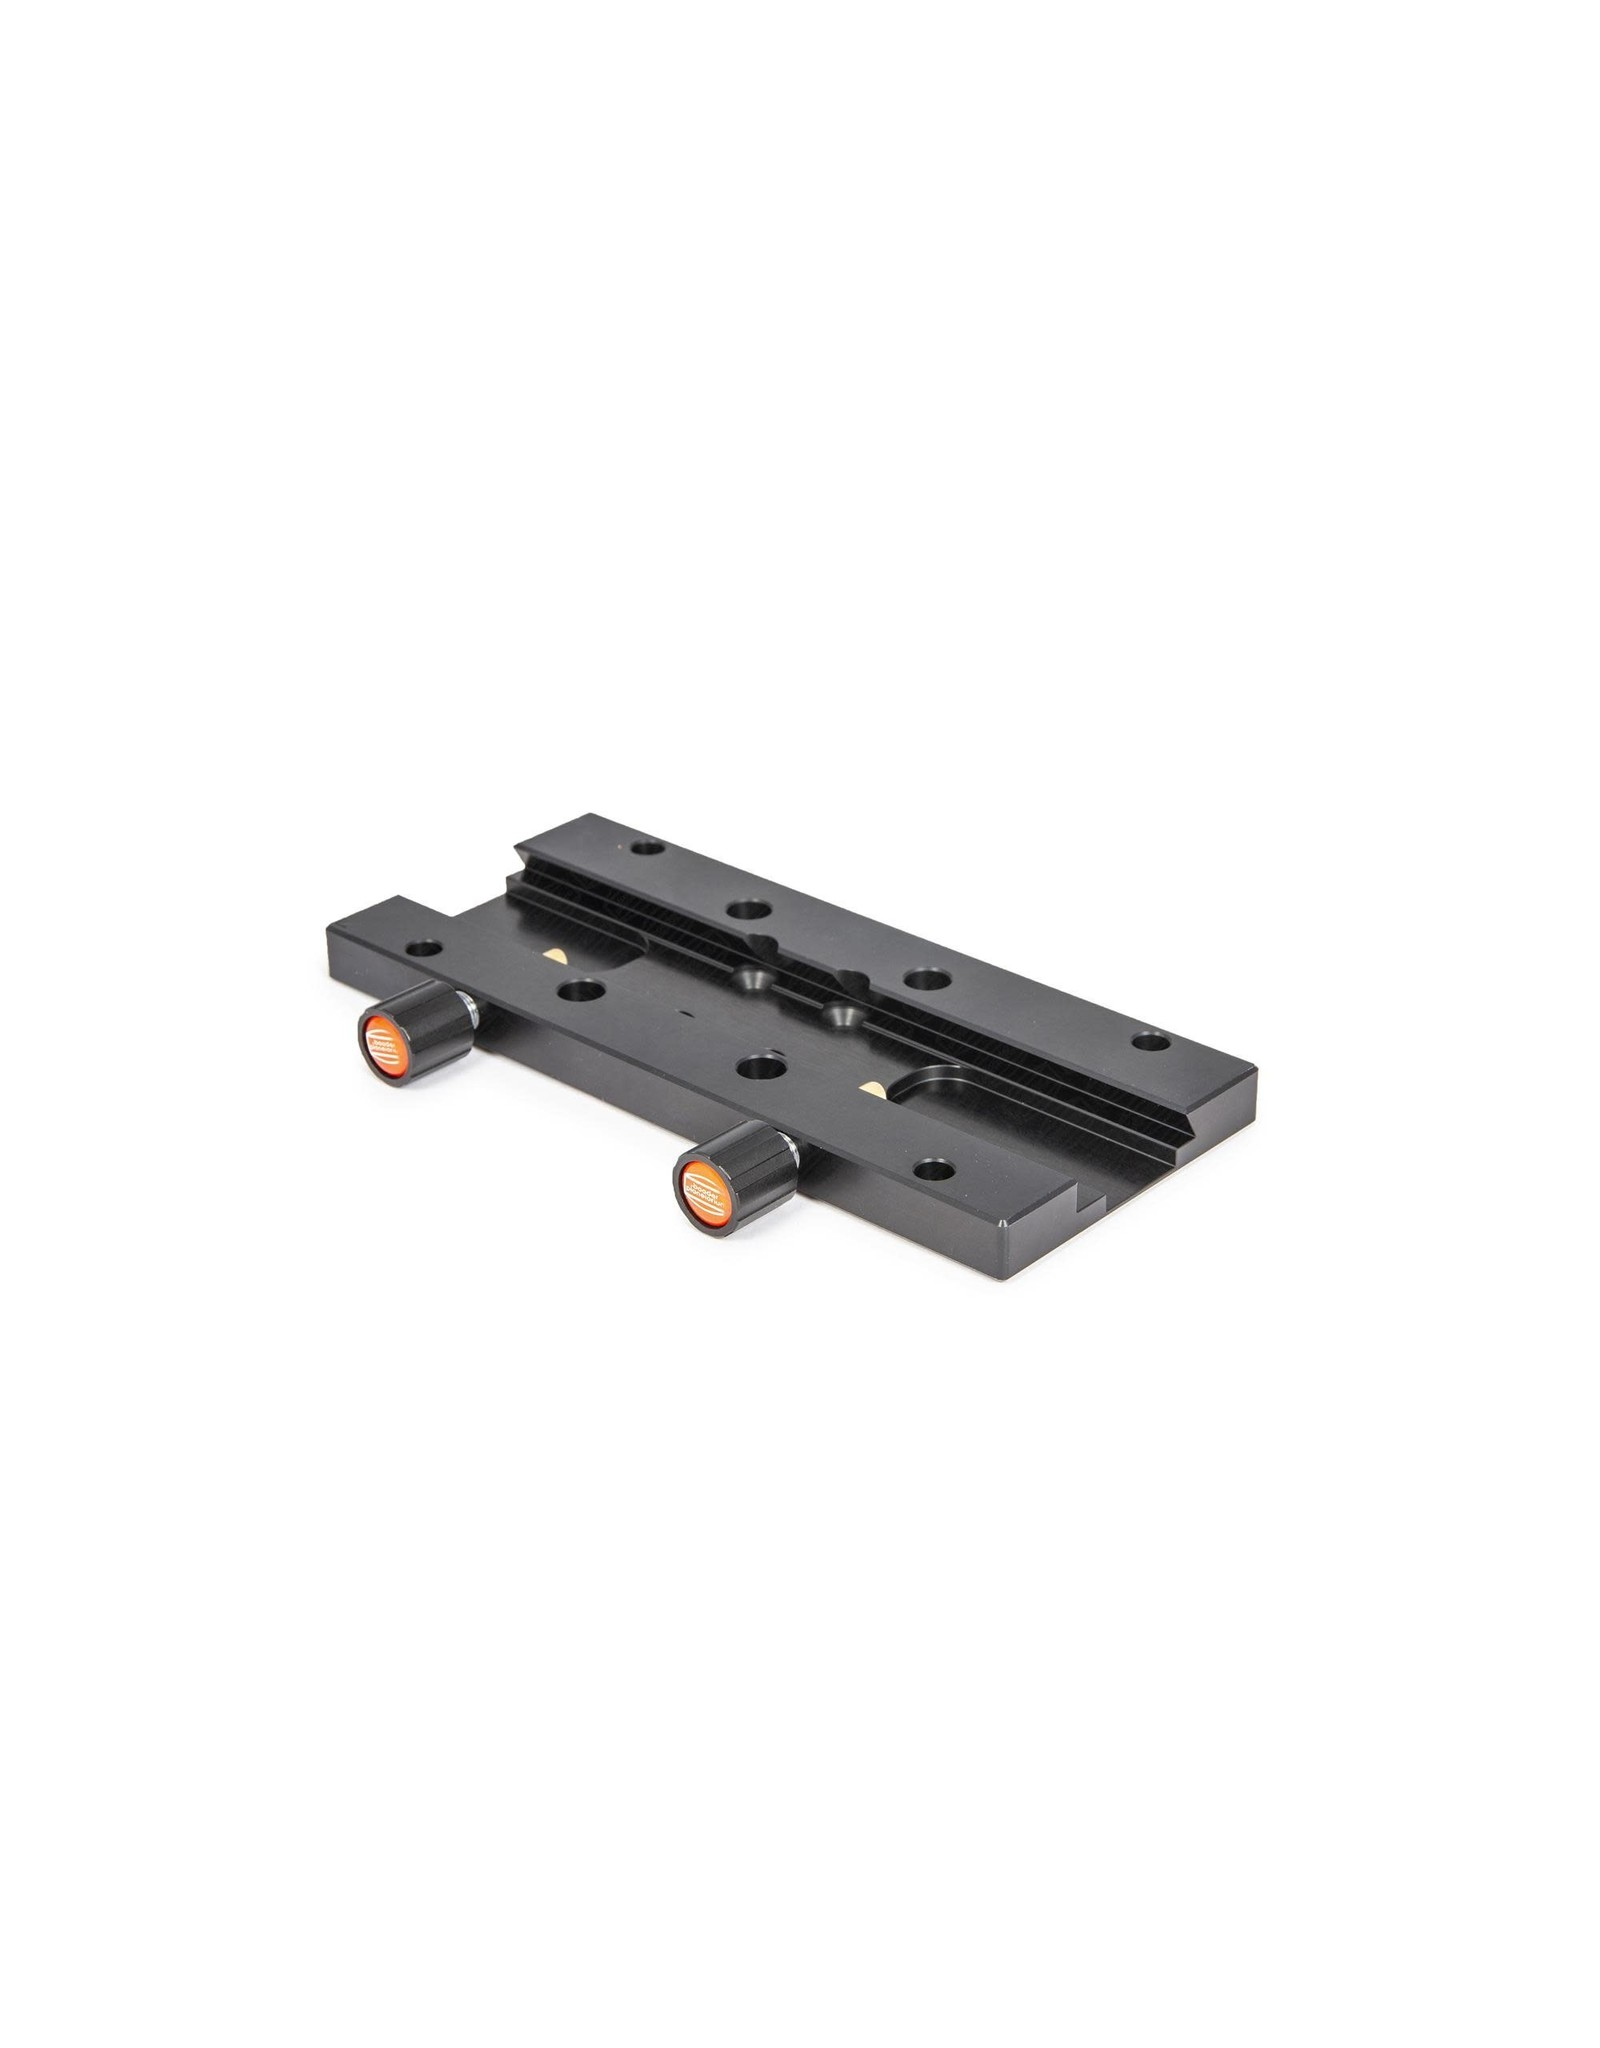 Baader Planetarium Baader Z(AP)-Dovetail Clamp 200mm length